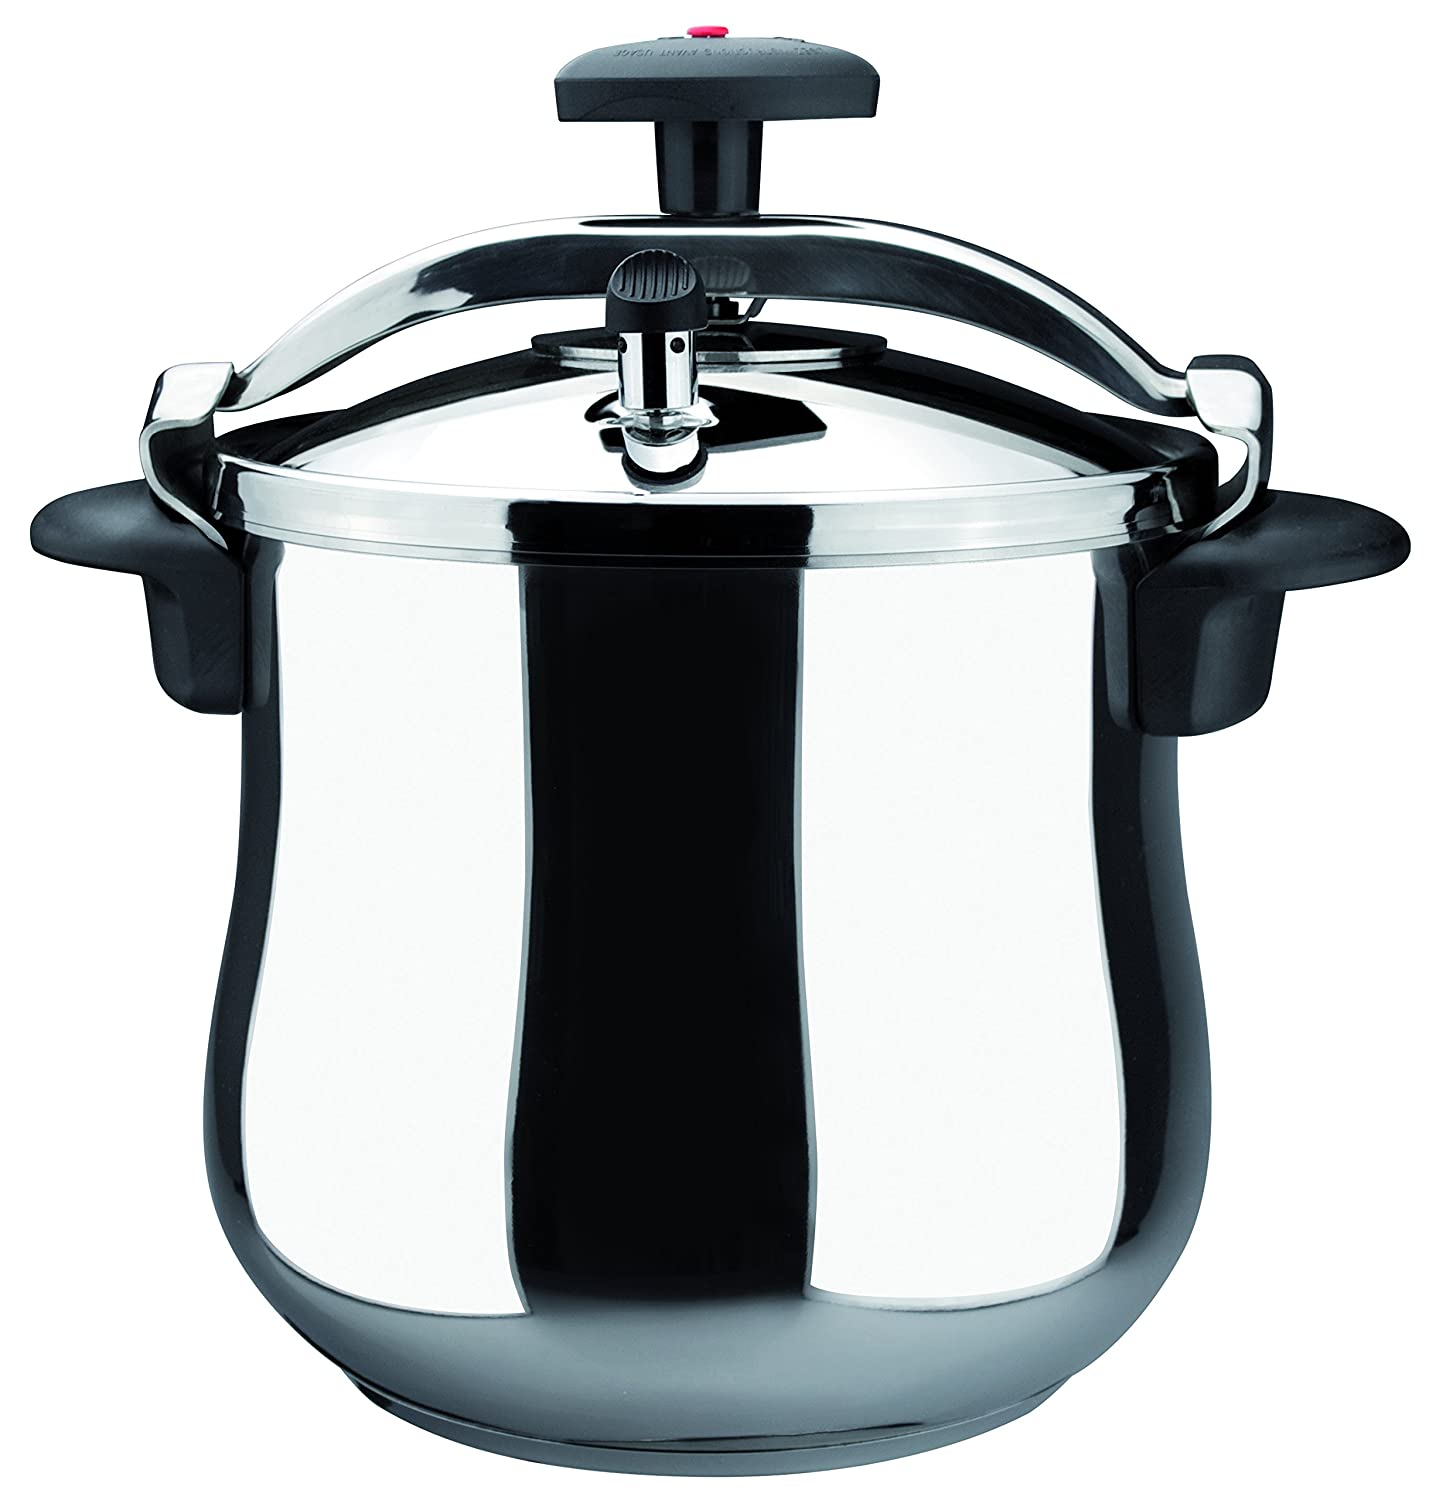 Magefesa 01OPSTABO10 Star B Stainless Steel Fast Pressure Cooker, 10-Quart